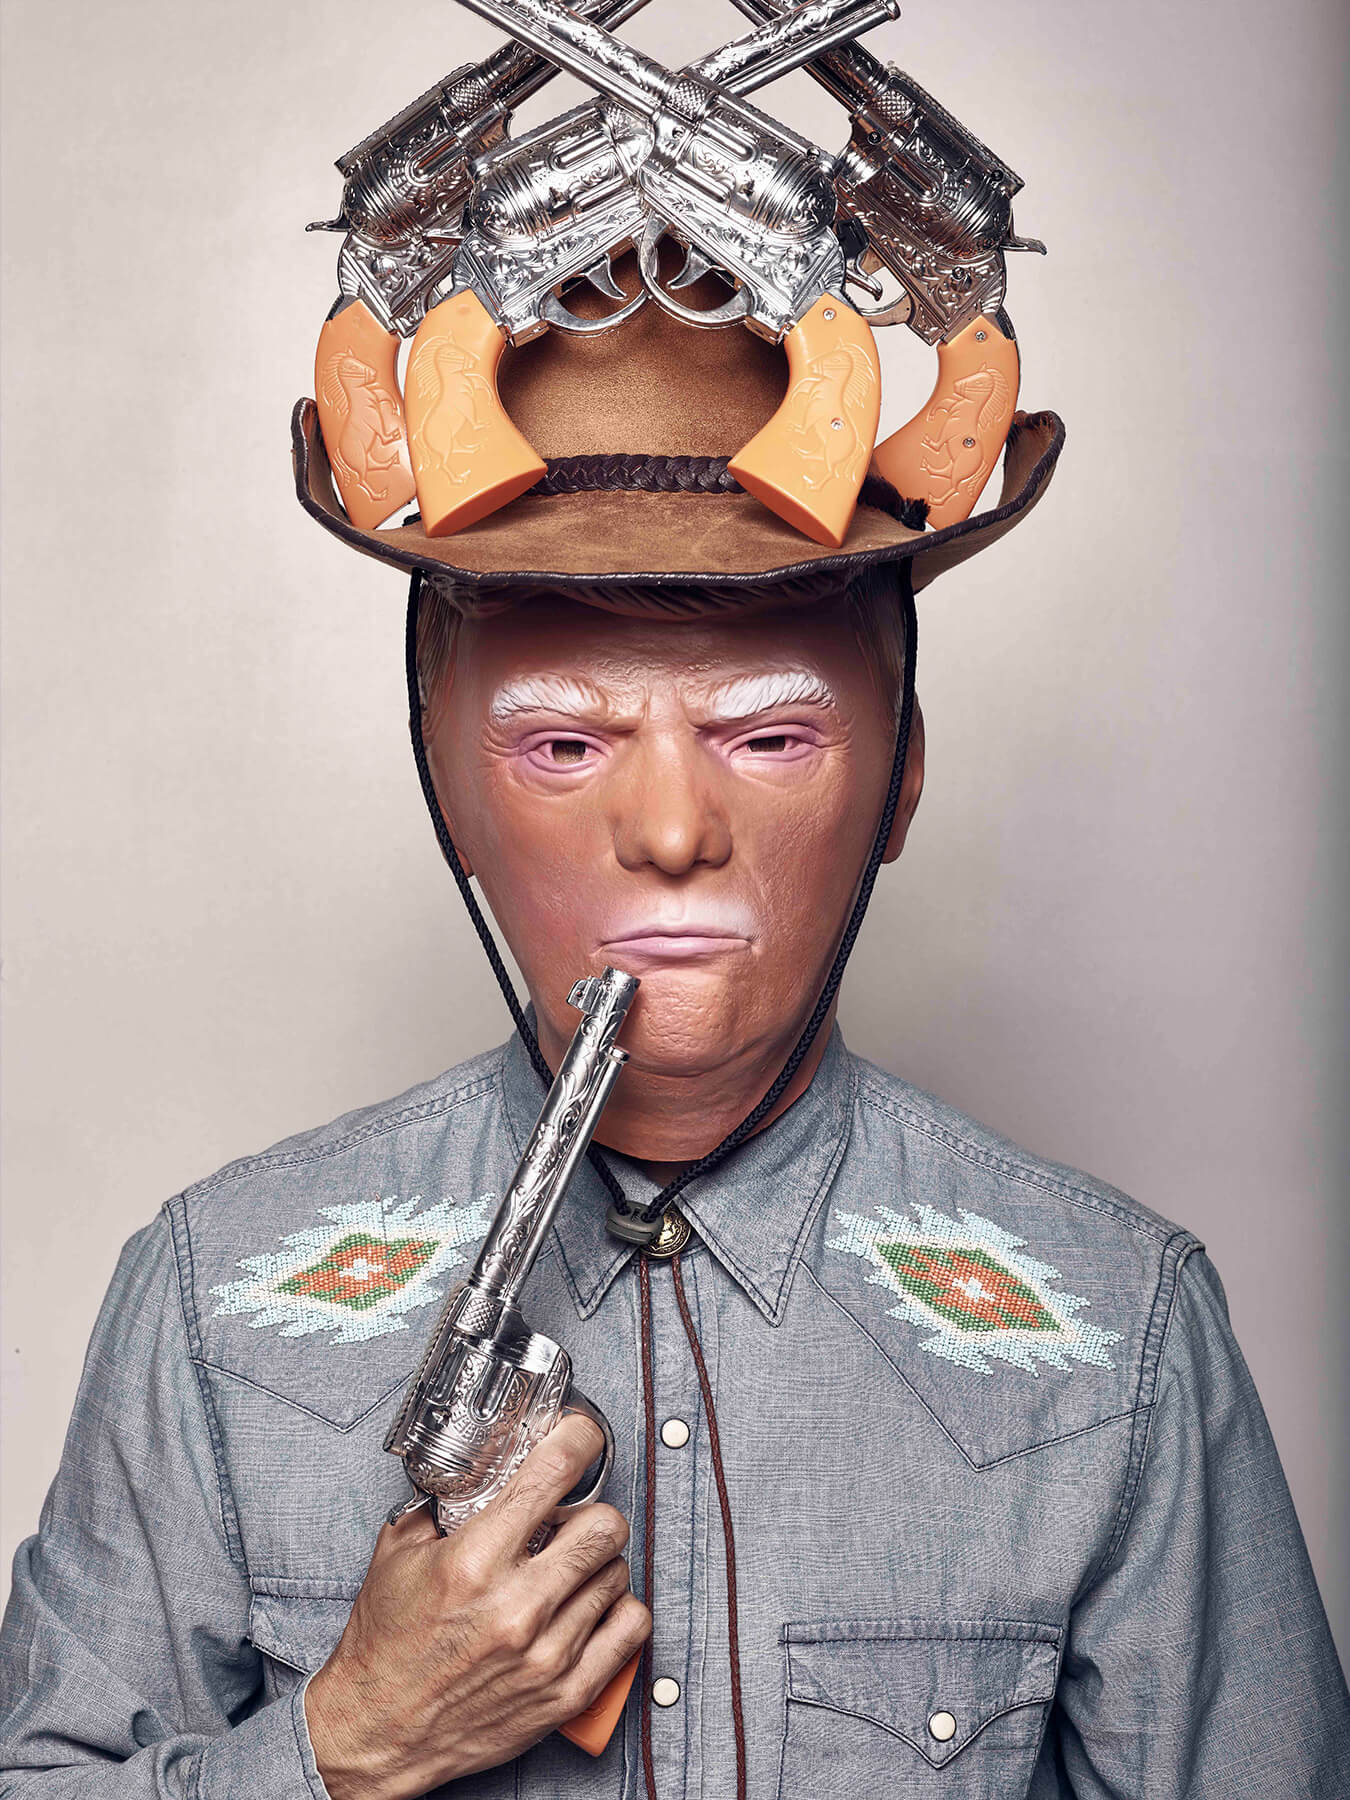 28 Aug 2017: Derong is photographed as Donald Trump and holding a pistol to his lip